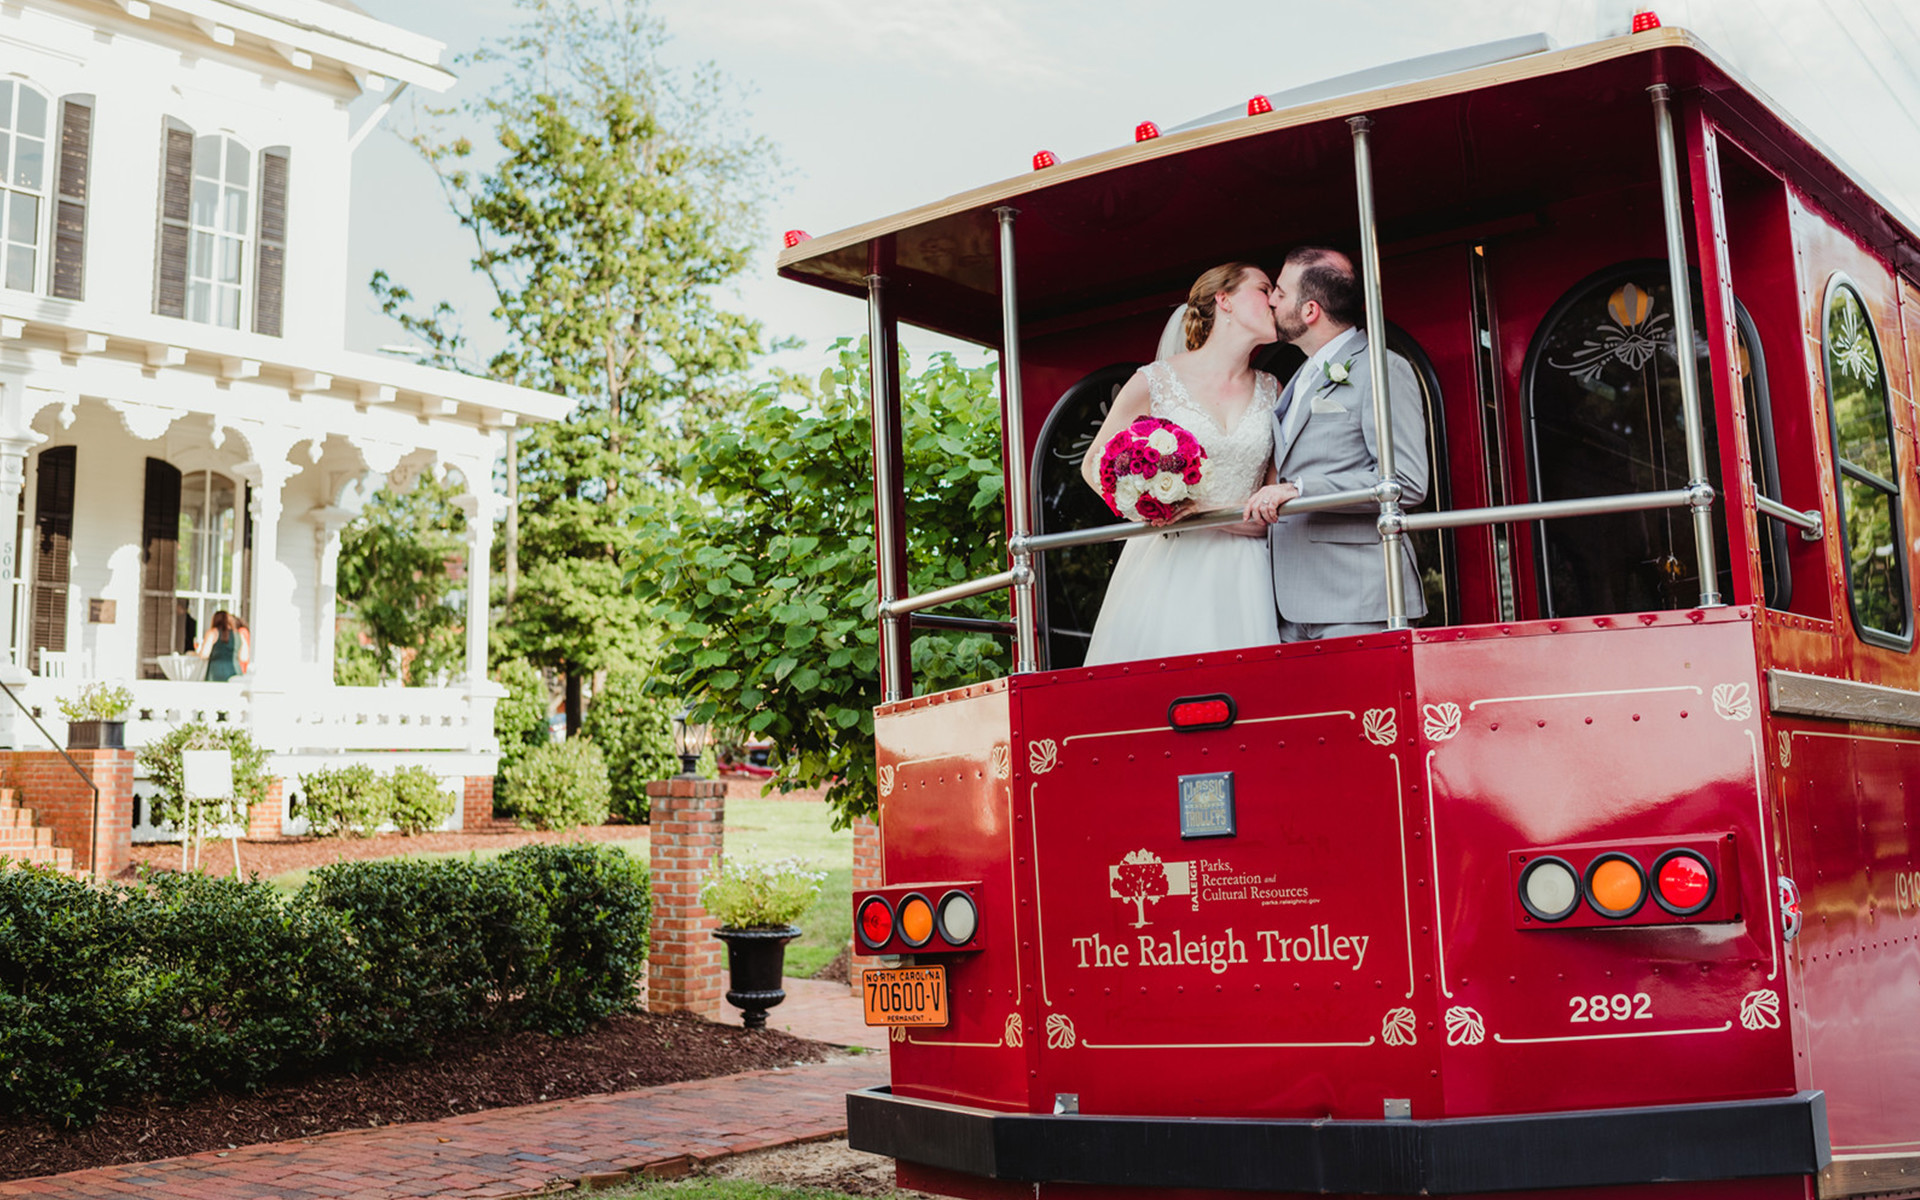 Summer Wedding Keeps it Cool with a Trolley and Special Musical Performances